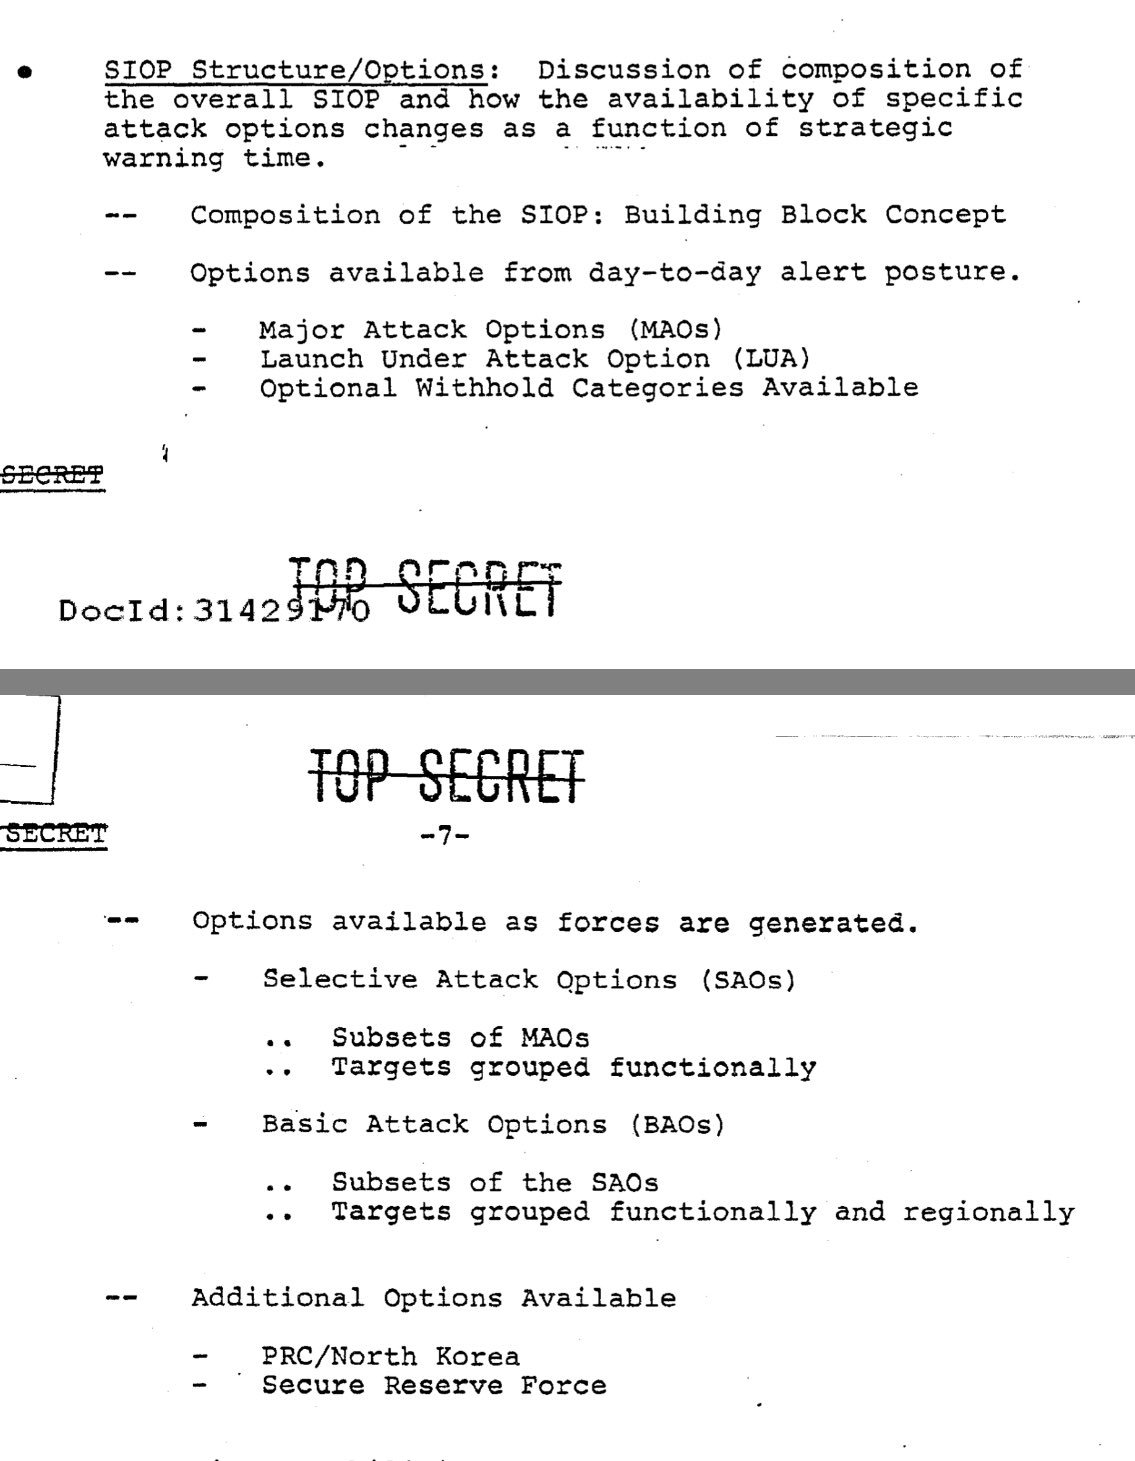 Ghost Of Arms Control Martin Pfeiffer On Twitter 8 N The Saos Korea Siop Nuclear War Plan Itself Had Evolved Significantly From 62 Fire Everything At